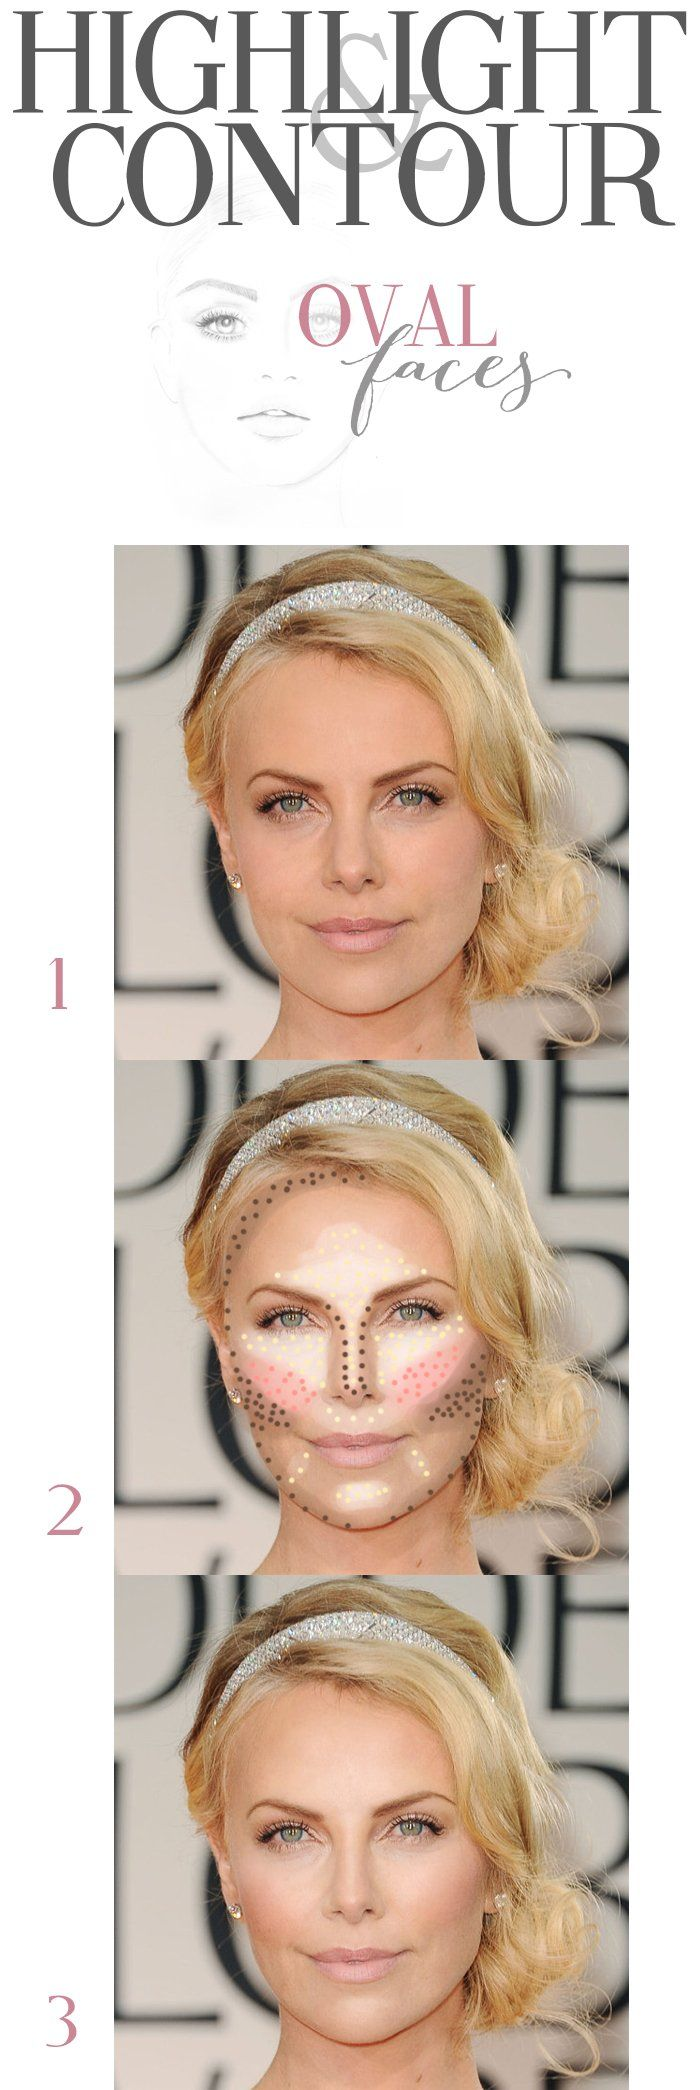 Highlighting & Contouring For Oval Face [ CaptainMarketing.com ] #beauty #online #marketing